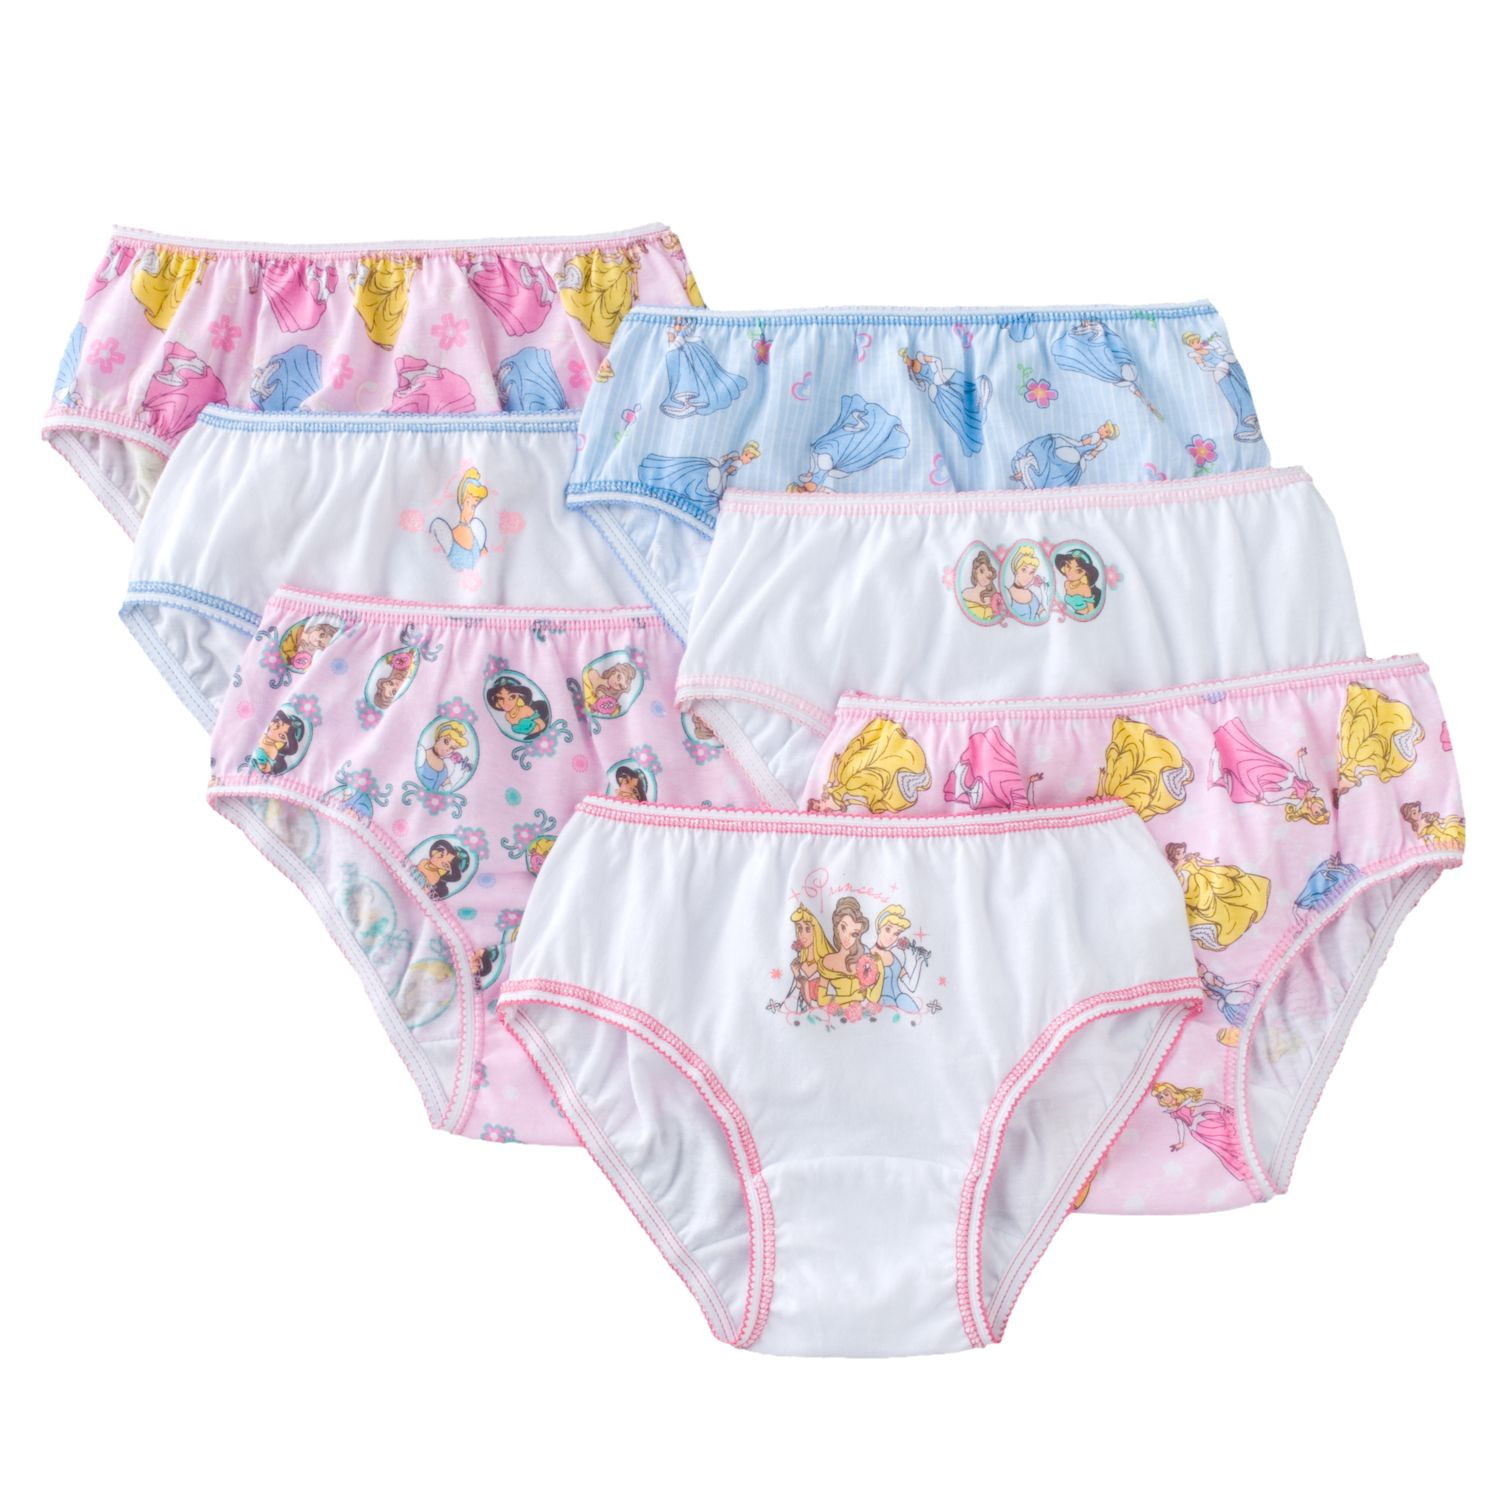 361f087957 Girls Kids Character Underwear